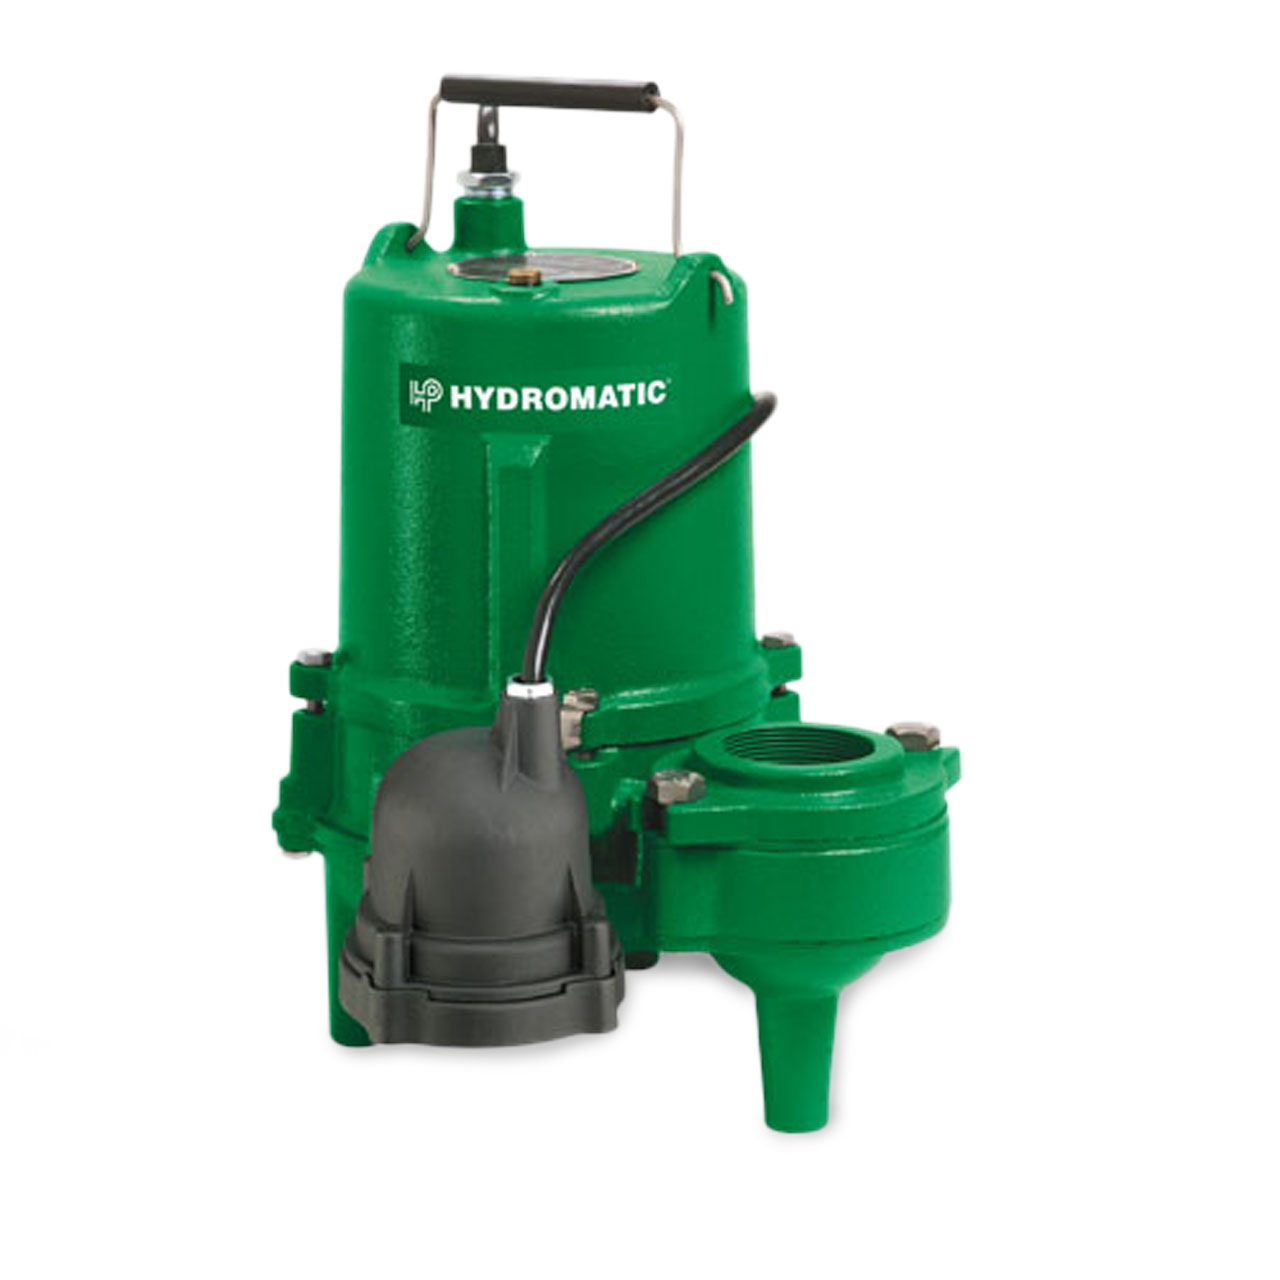 Hydromatic Pump Spd50mh5 Submersible Effluent 05 Septic Alarm Wiring Hp 575v 3ph Manual 20 Cord Seal Failure Htc517480507